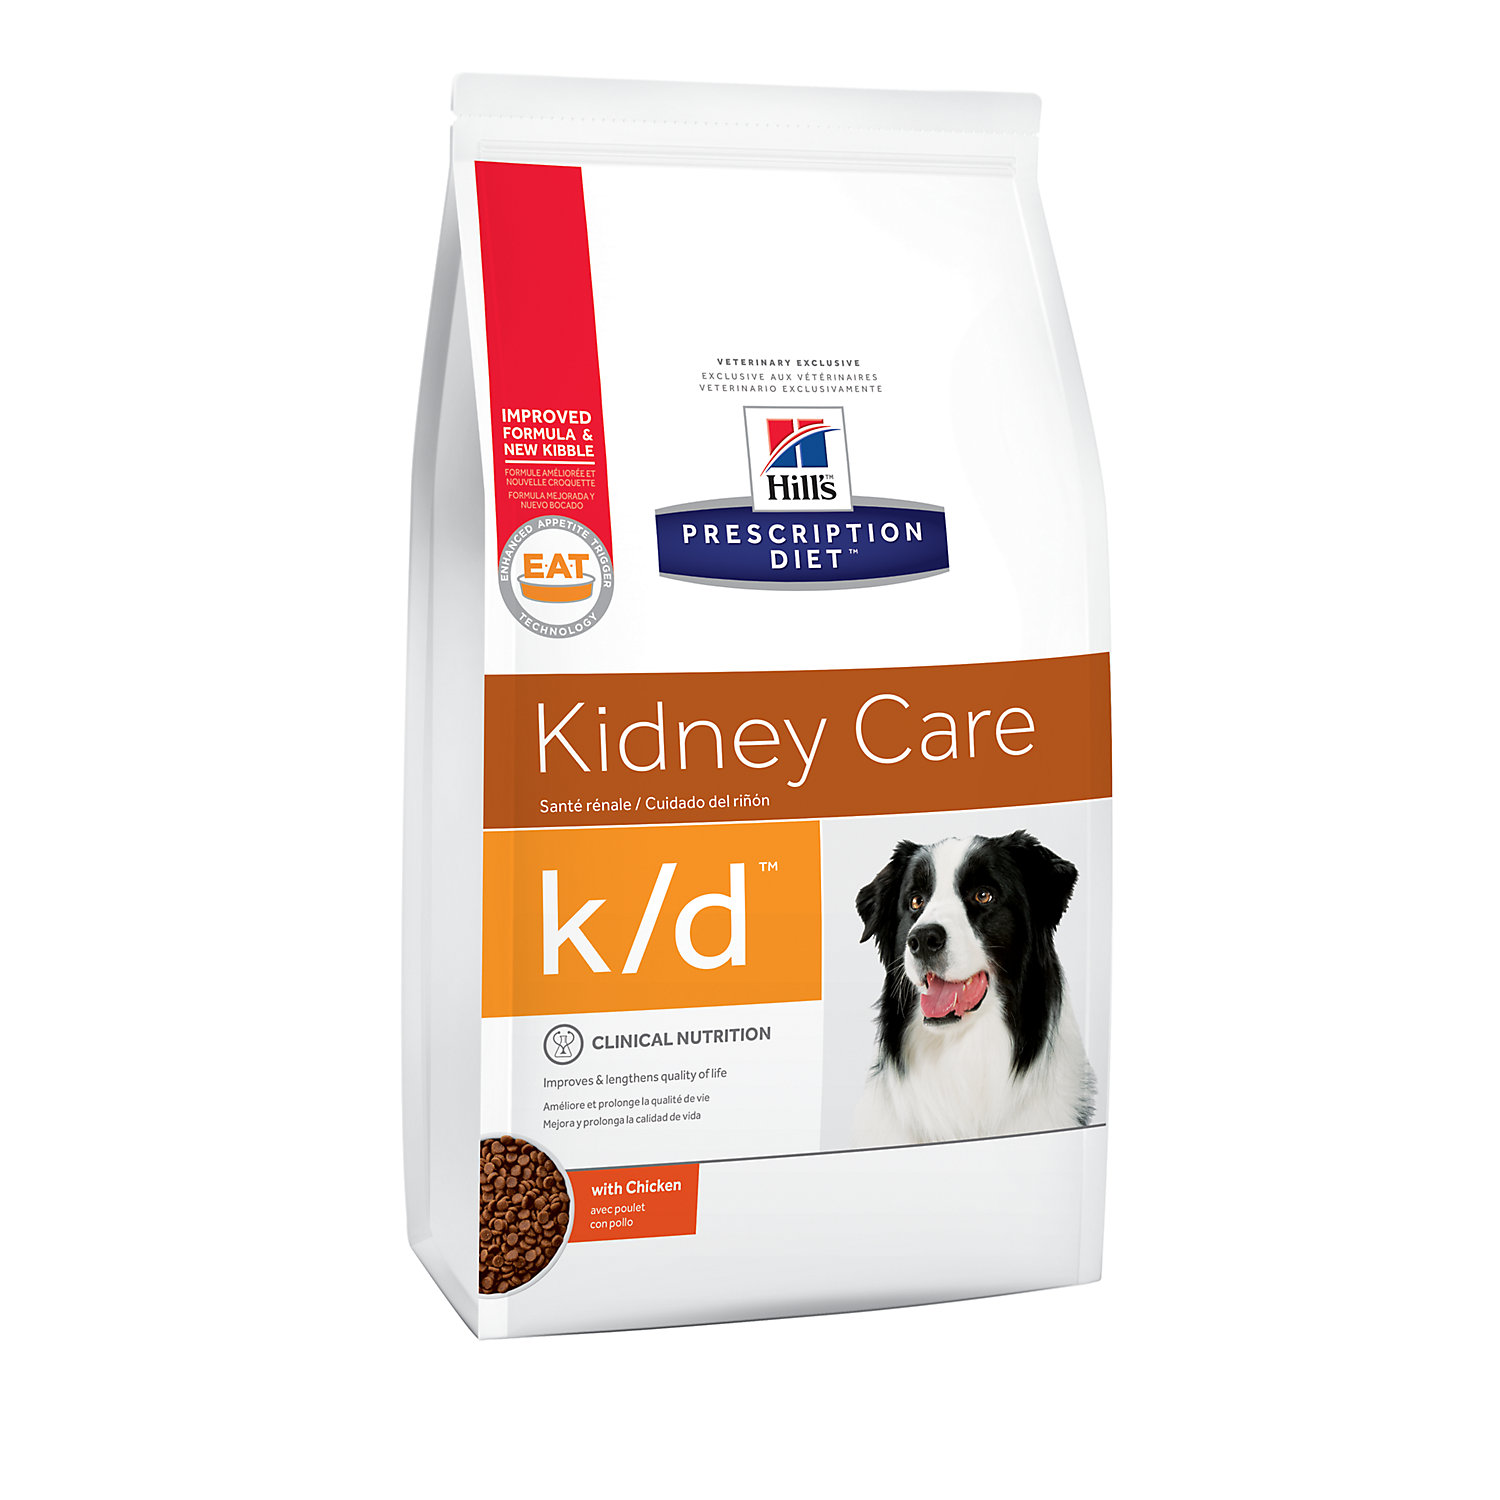 Hills Prescription Diet kd Kidney Care with Chicken Dry Dog Food 17.6 lbs. Bag